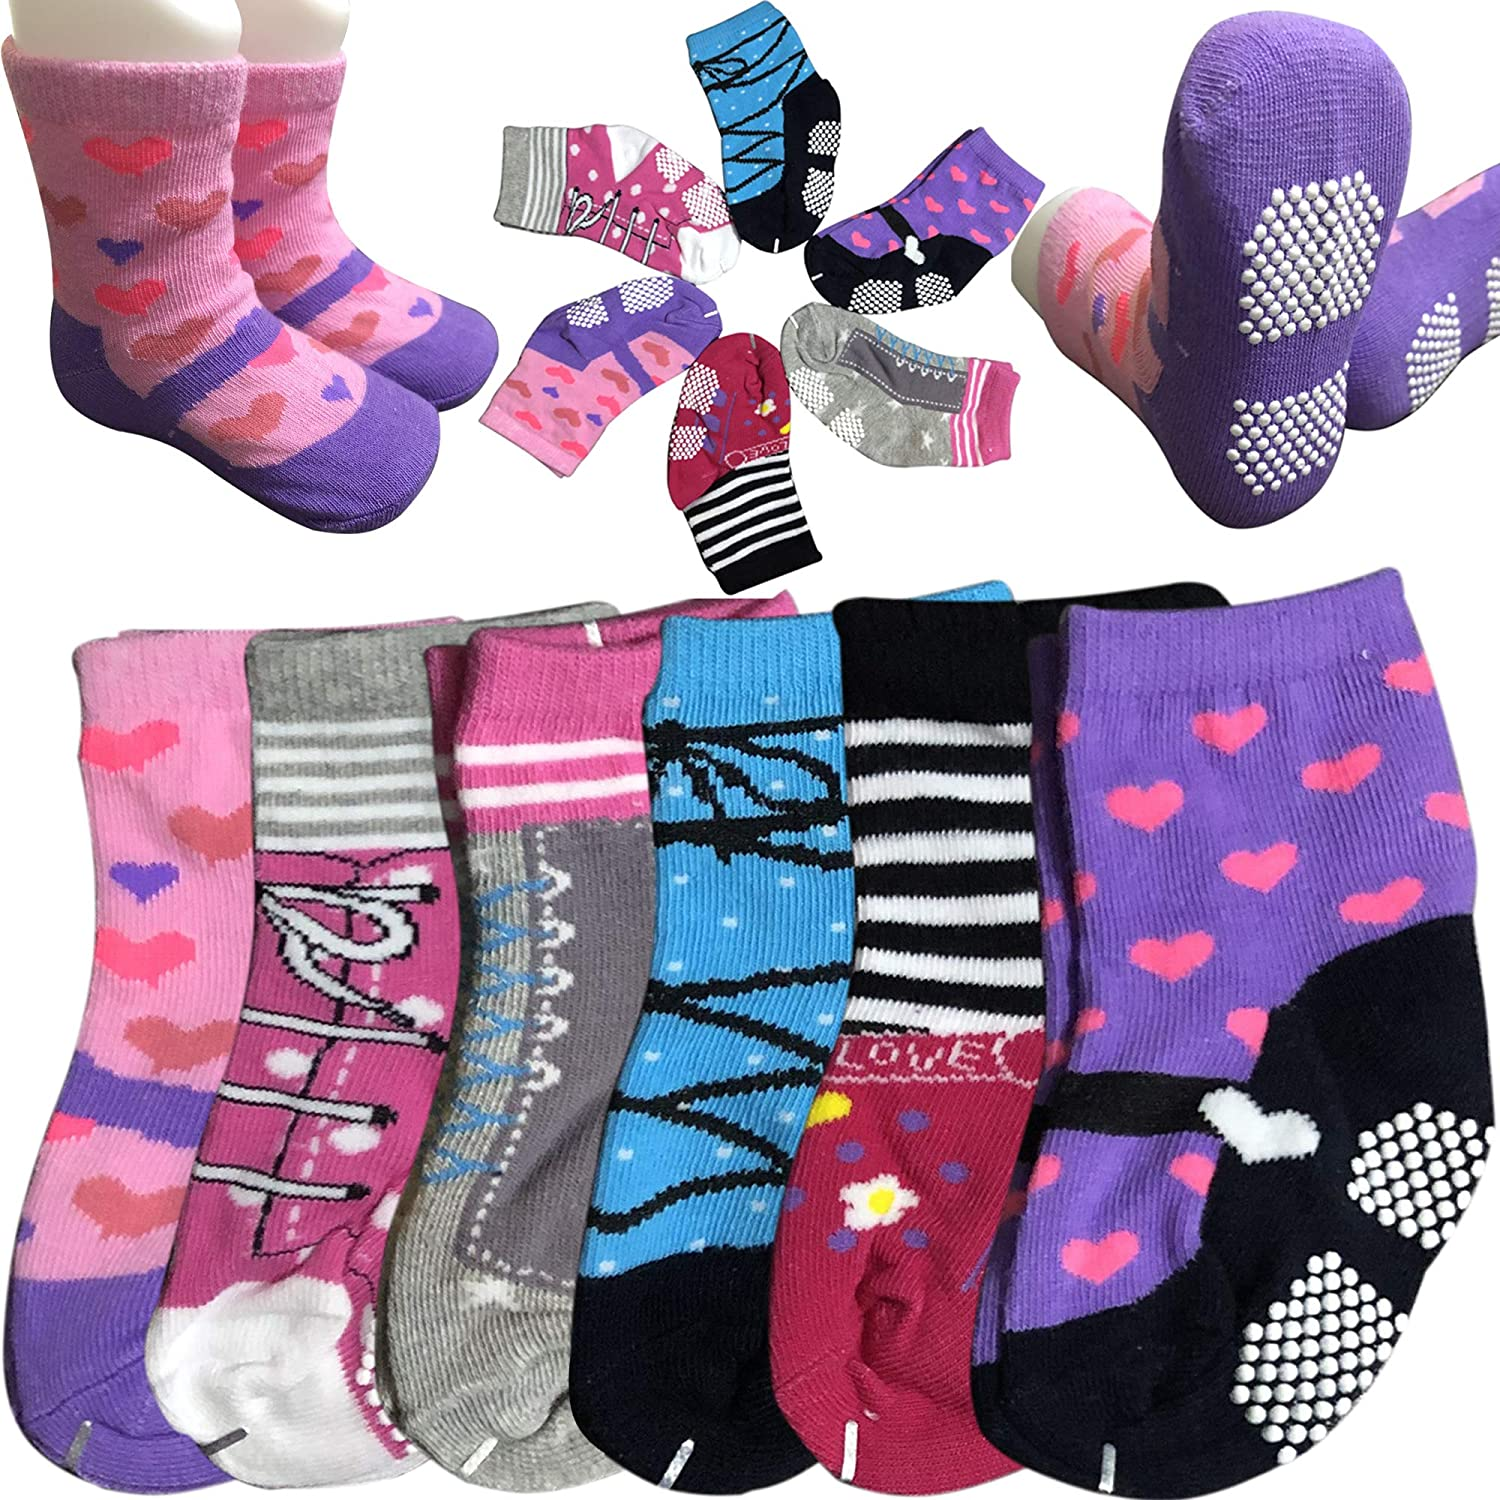 Trumpette Noodles Boys 12-24 Months Baby Toddler Non Skid Socks~4 Pairs